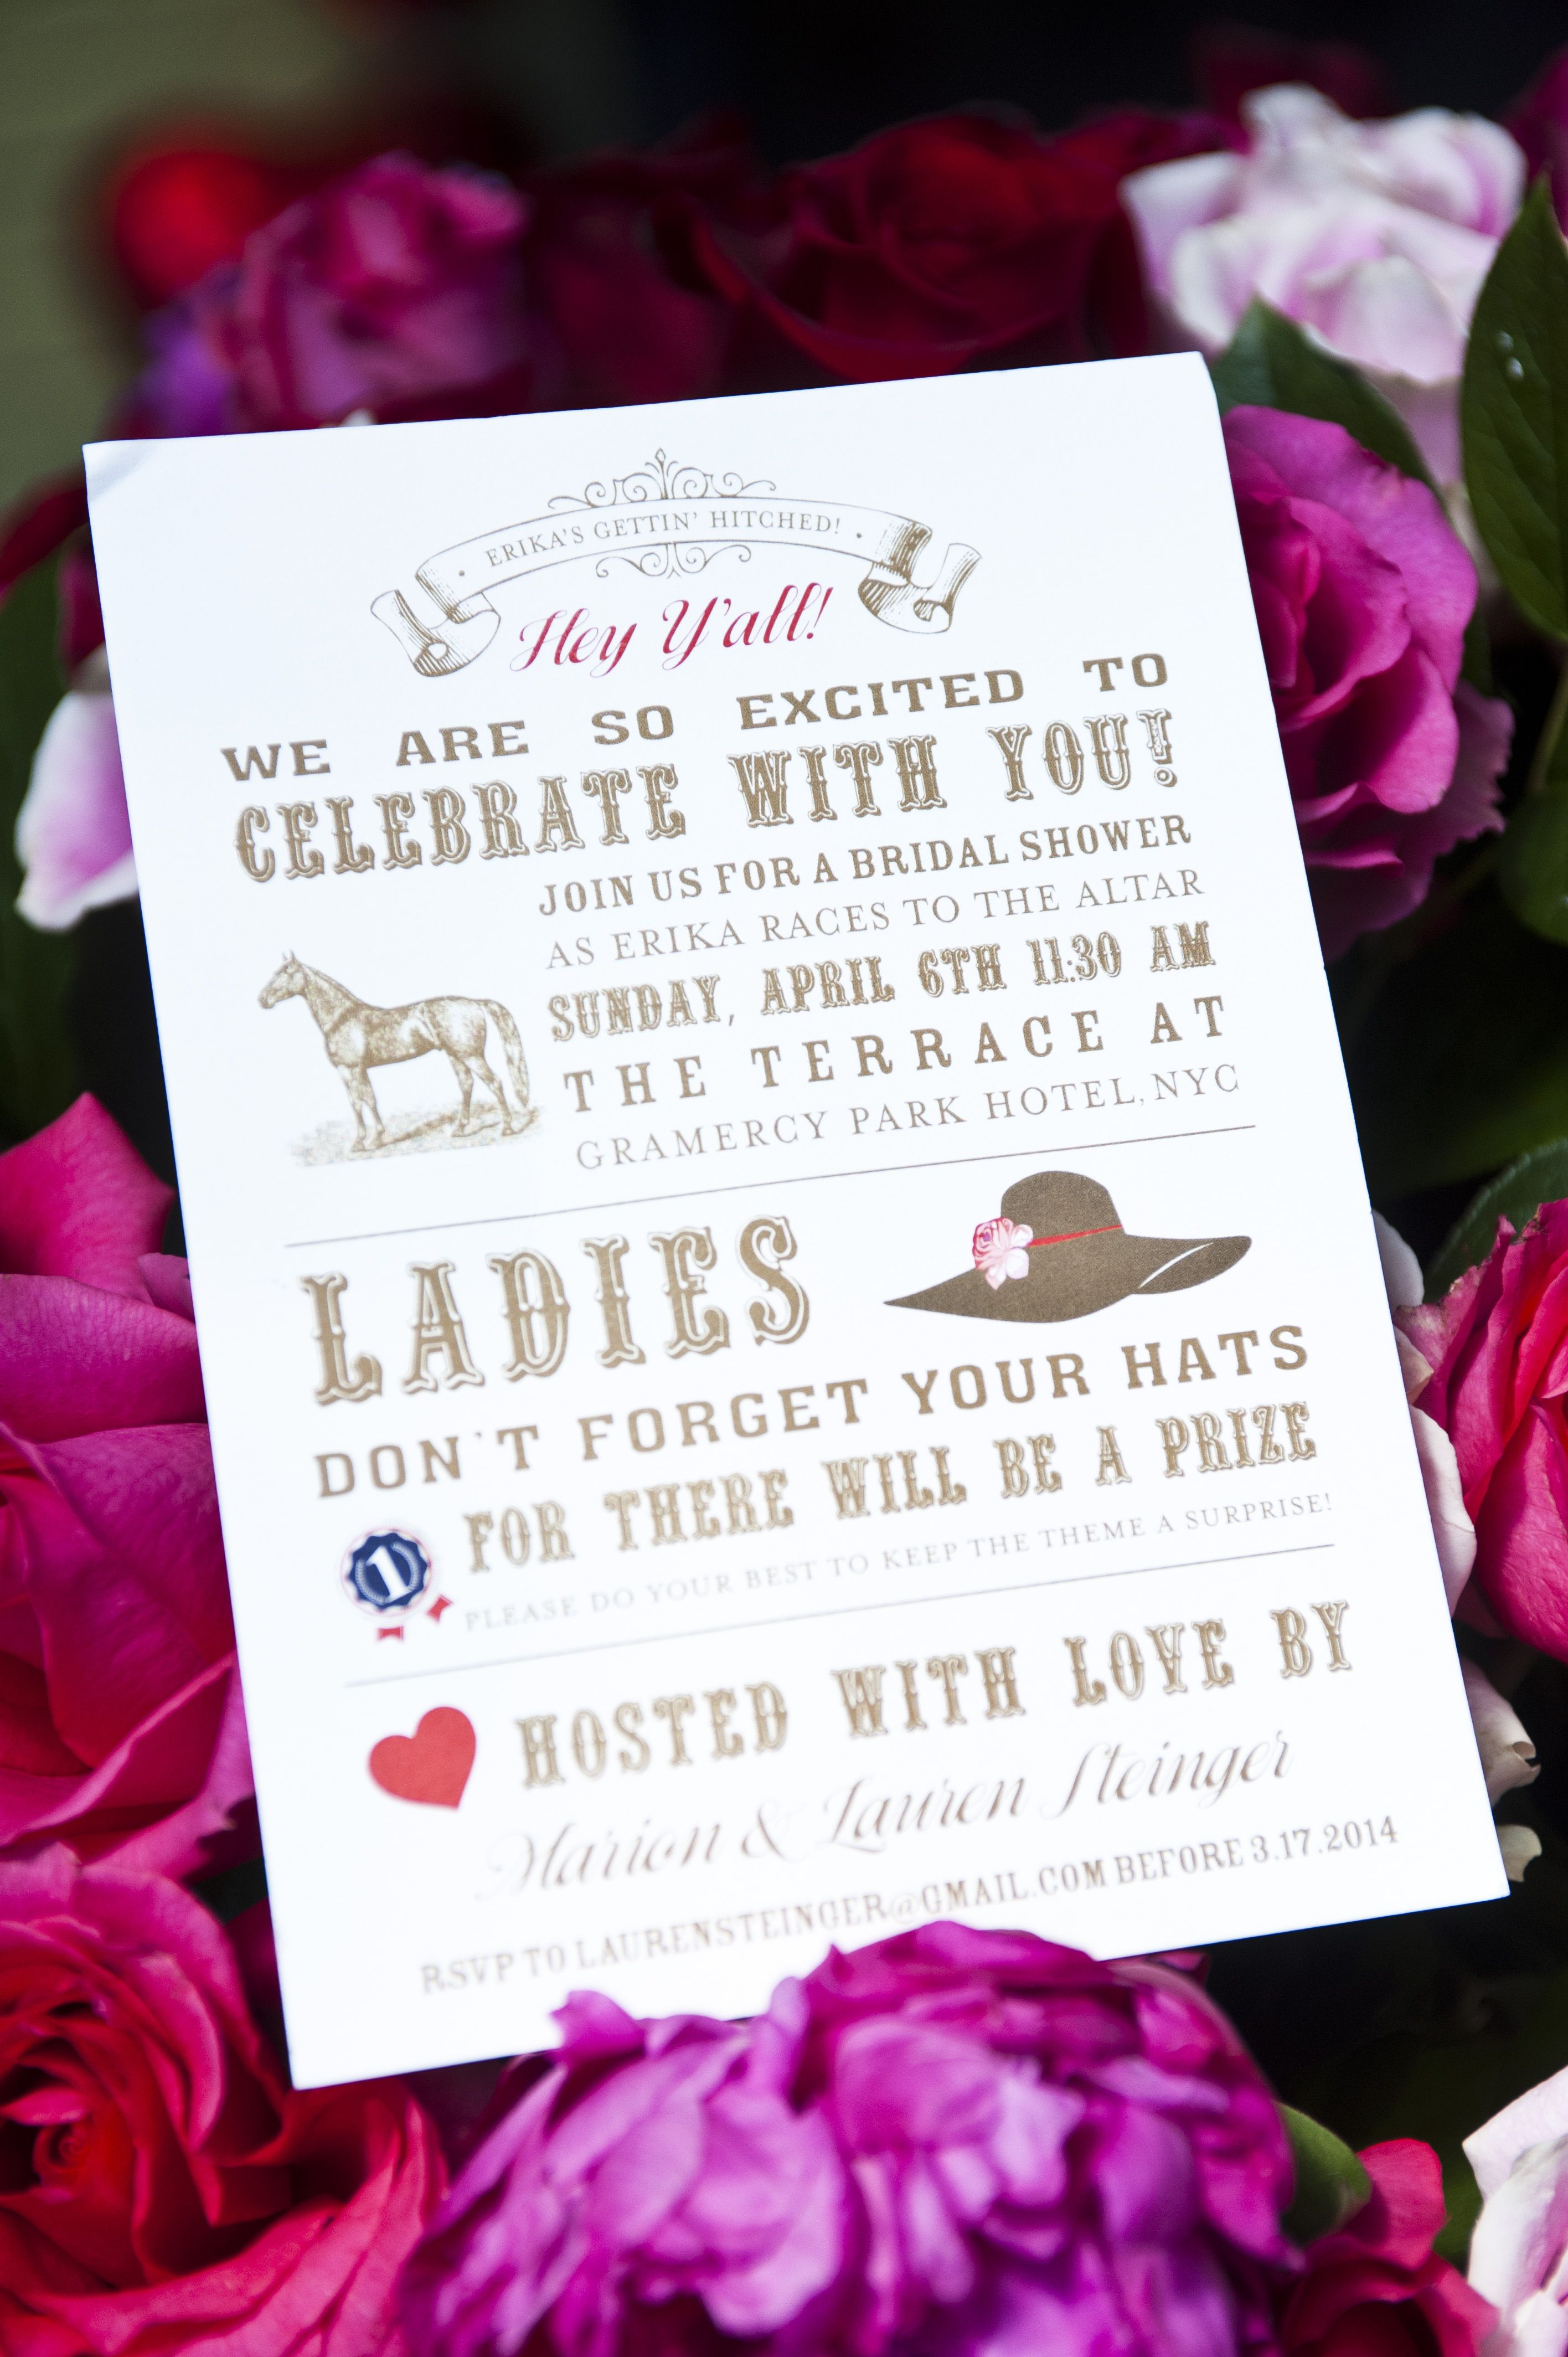 Kentucky derby bridal shower invitation by prim pixie kentucky kentucky derby bridal shower invitation by prim pixie filmwisefo